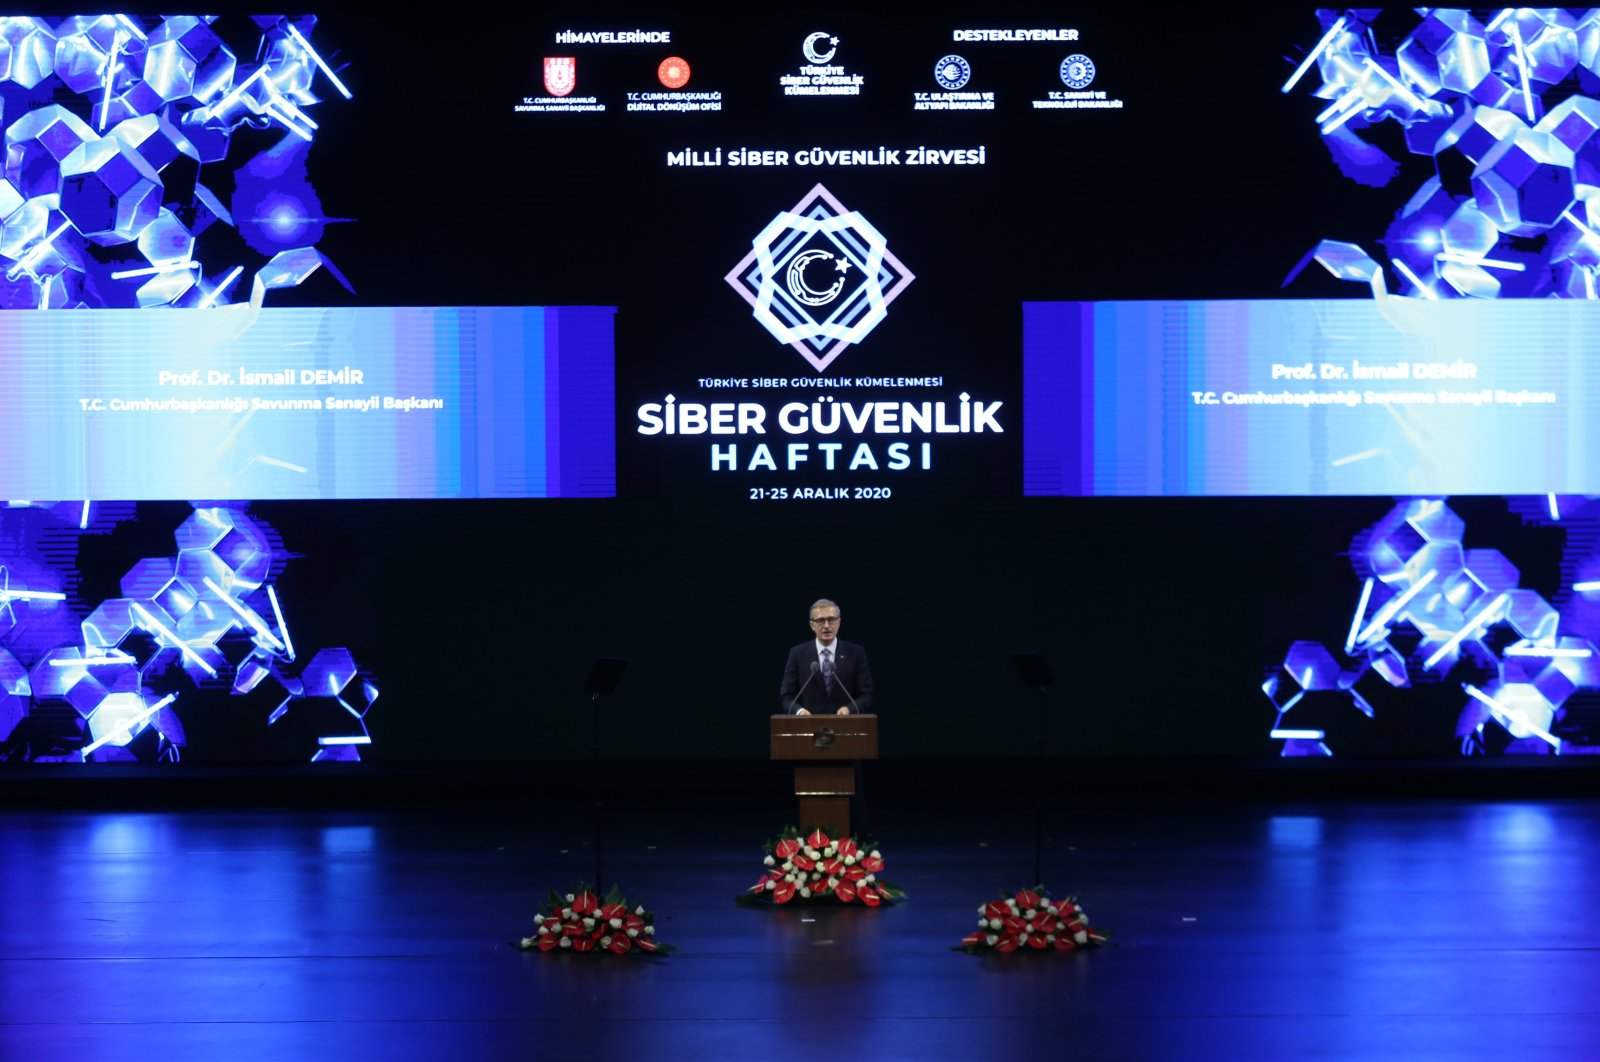 Ismail Demir, the head of the Presidency of Defense Industries (SSB), speaks at an event for Turkey's Cybersecurity Week in the capital Ankara, Dec. 21, 2020. (AA Photo)